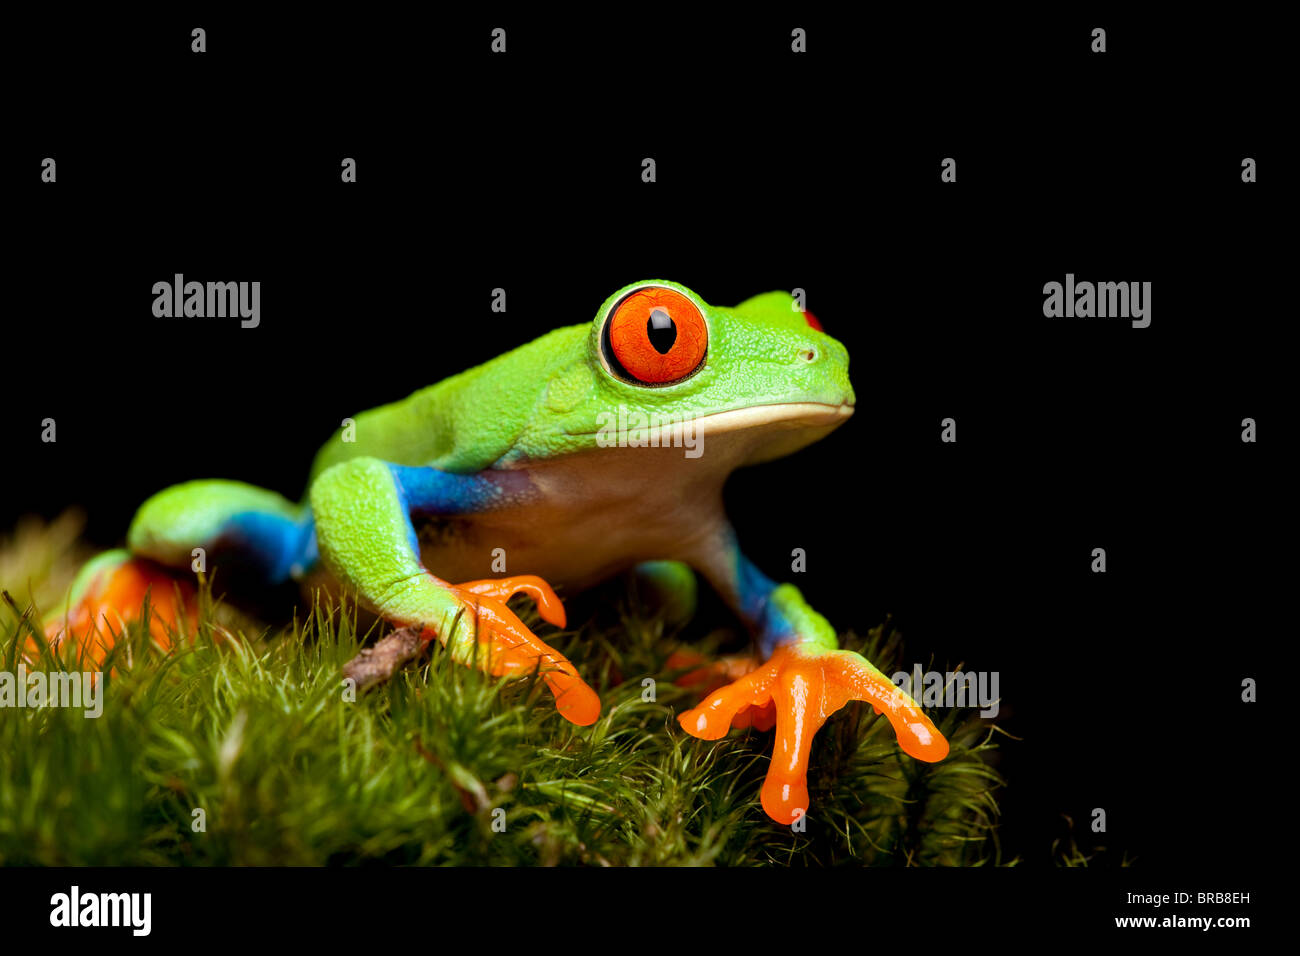 red-eyed tree frog closeup on black, sitting on natural moss ready to jump. Agalychnis callidryas. Stock Photo